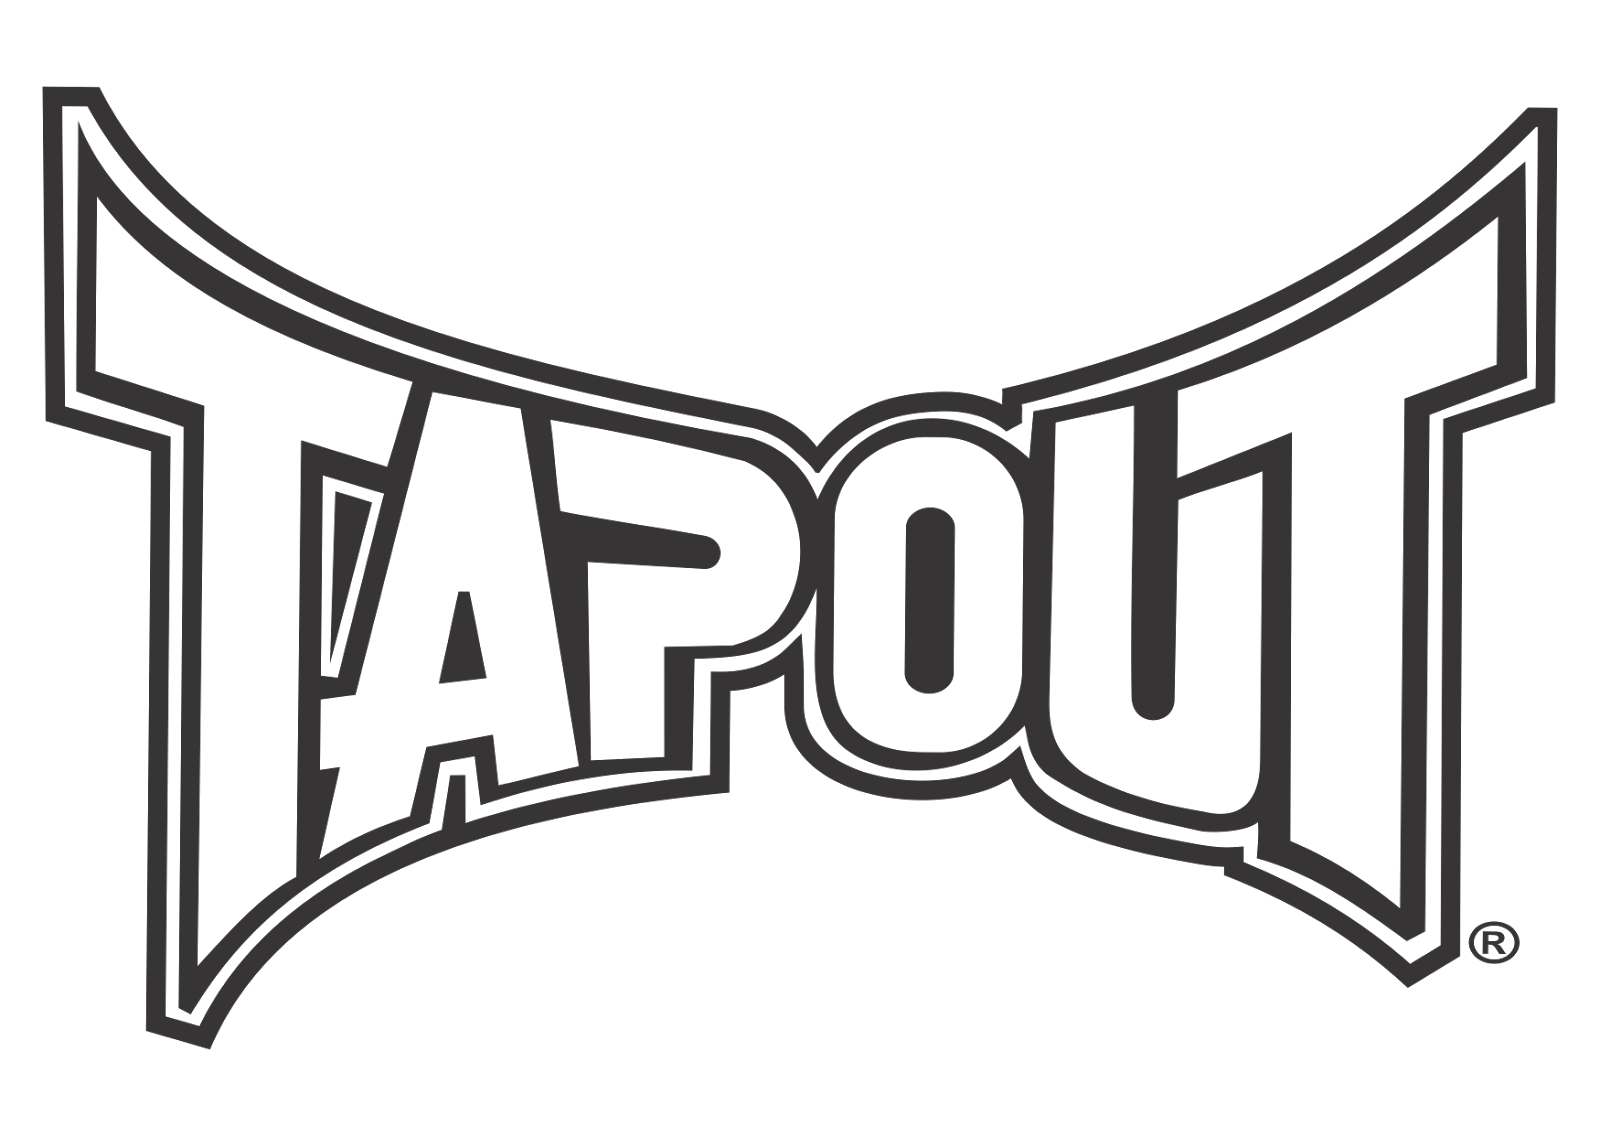 tapout logo red mma - photo #13